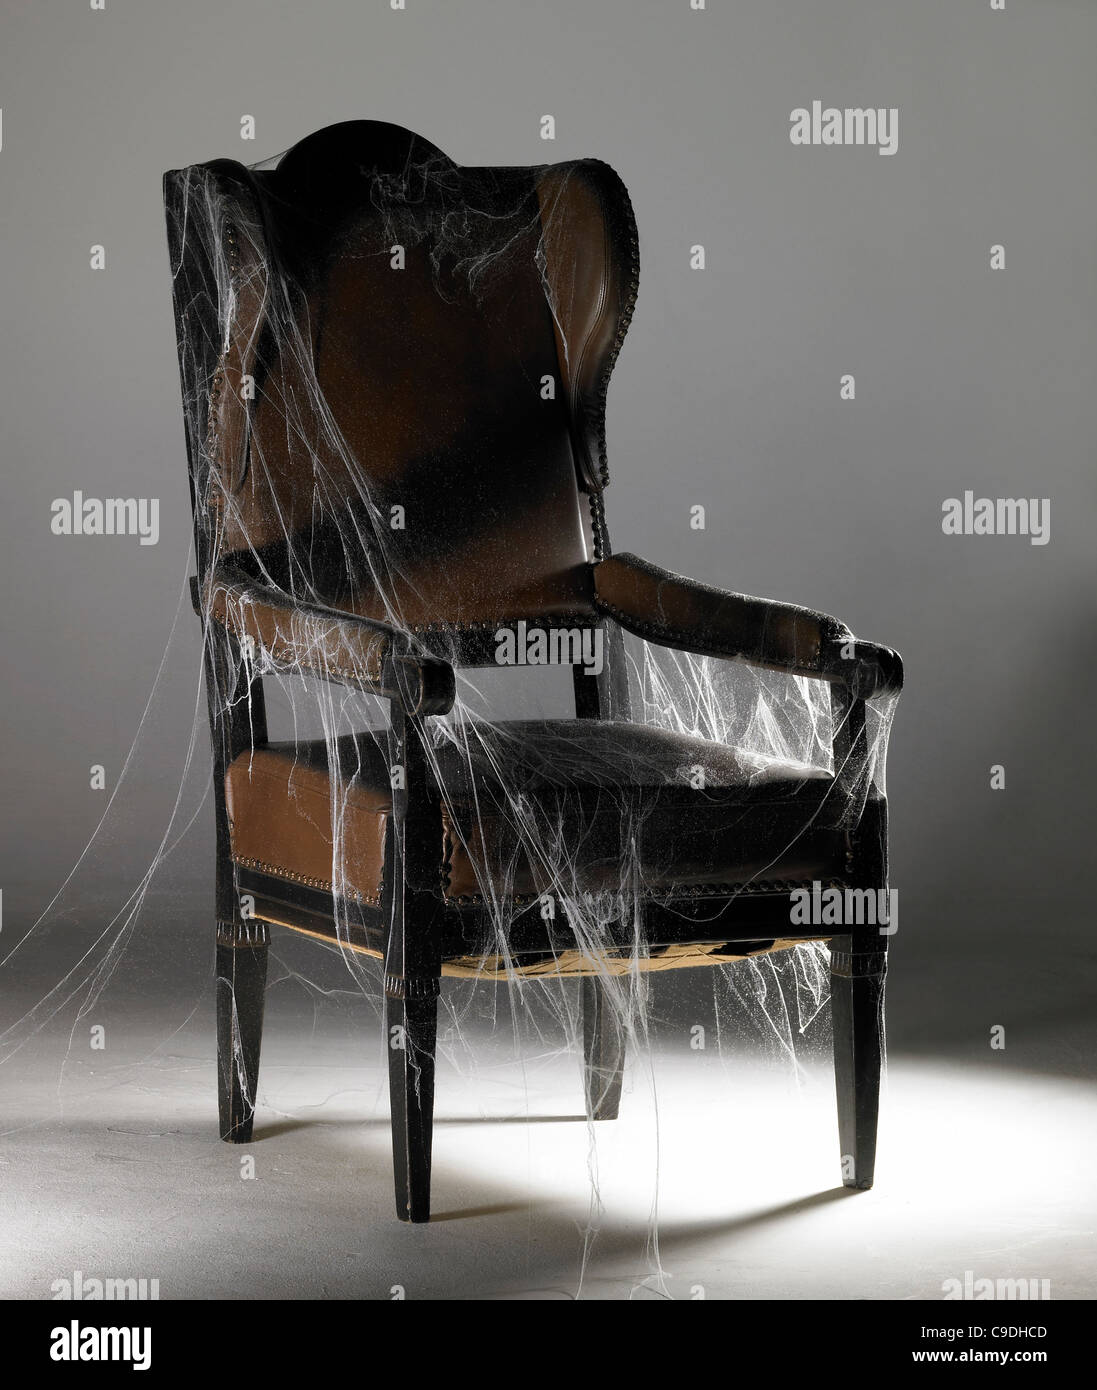 studio photography of a old nostalgic wing chair covered with artificial cobwebs in illuminated grey back - Stock Image